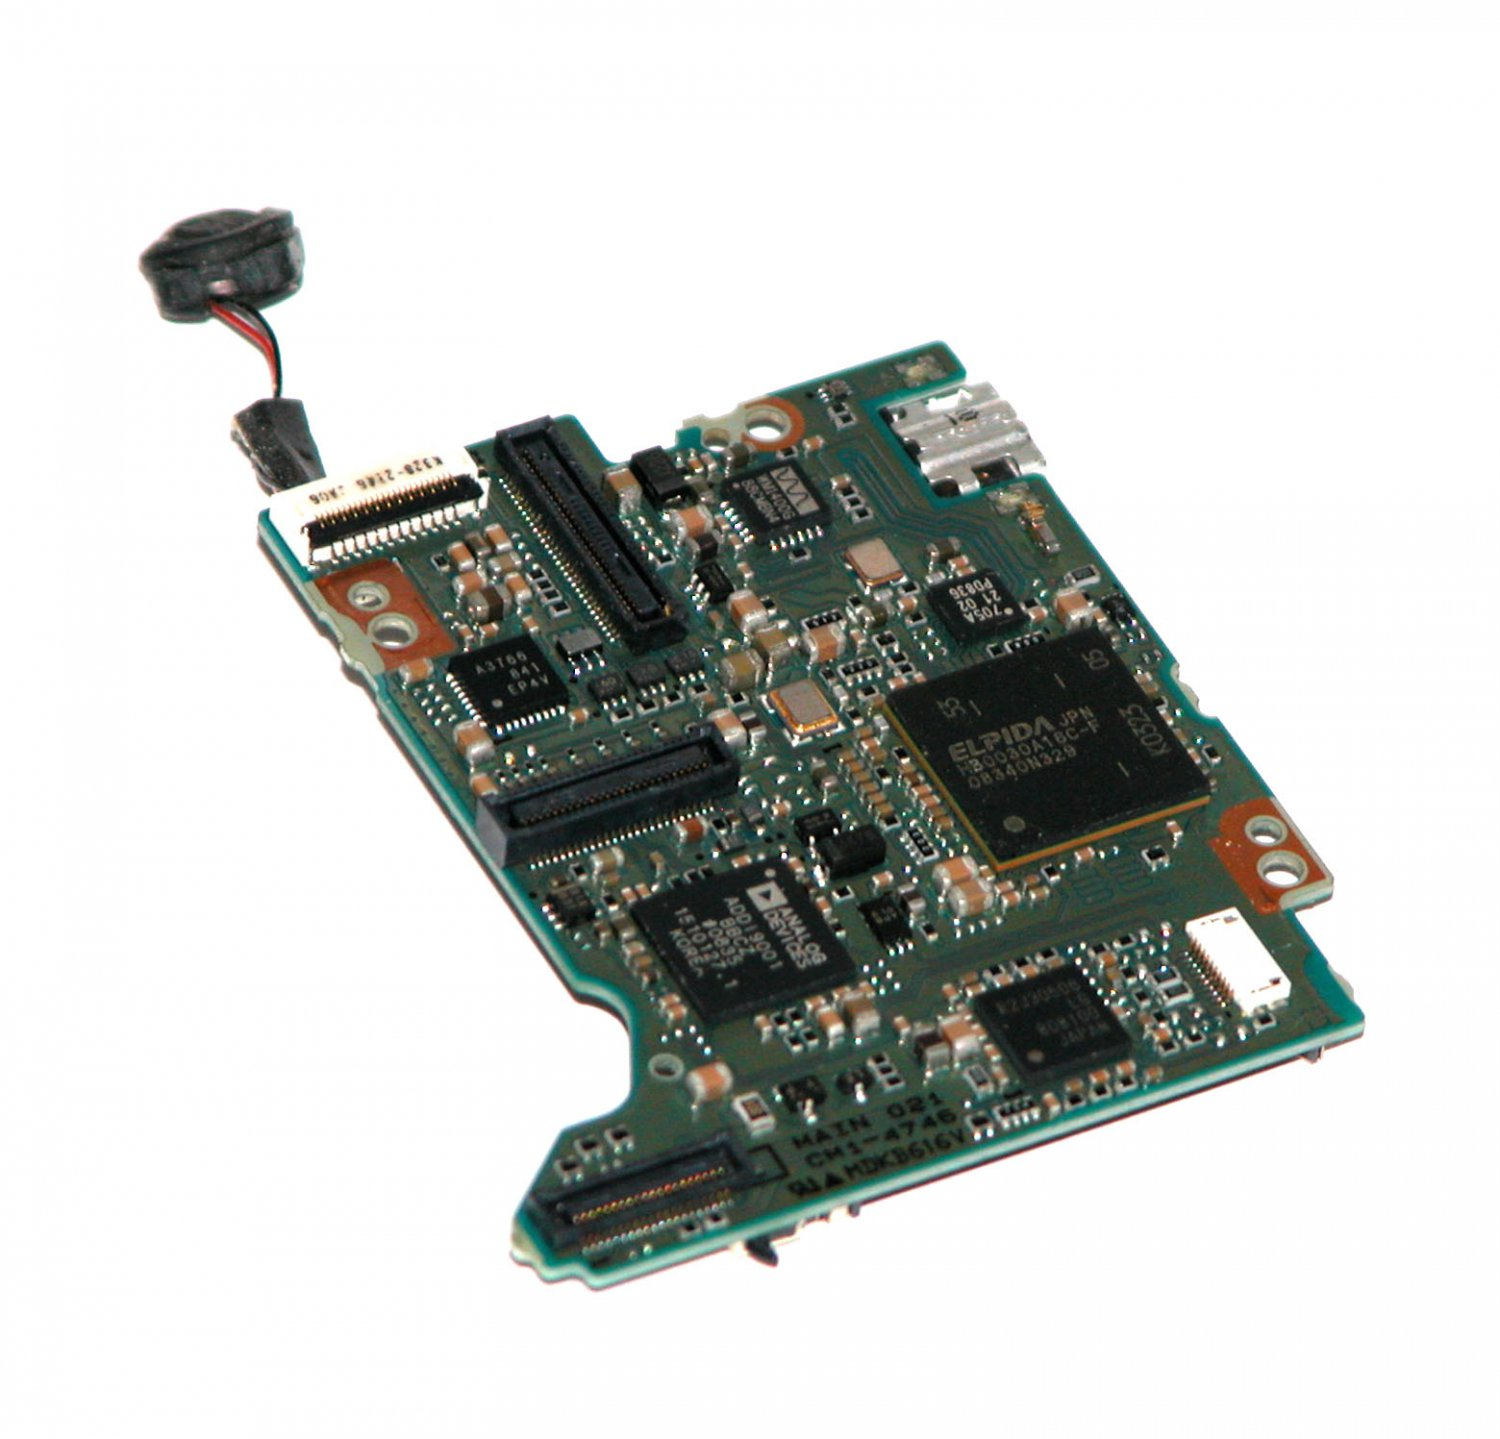 Canon Powershot SD990 IS Main System Board - Repair Parts